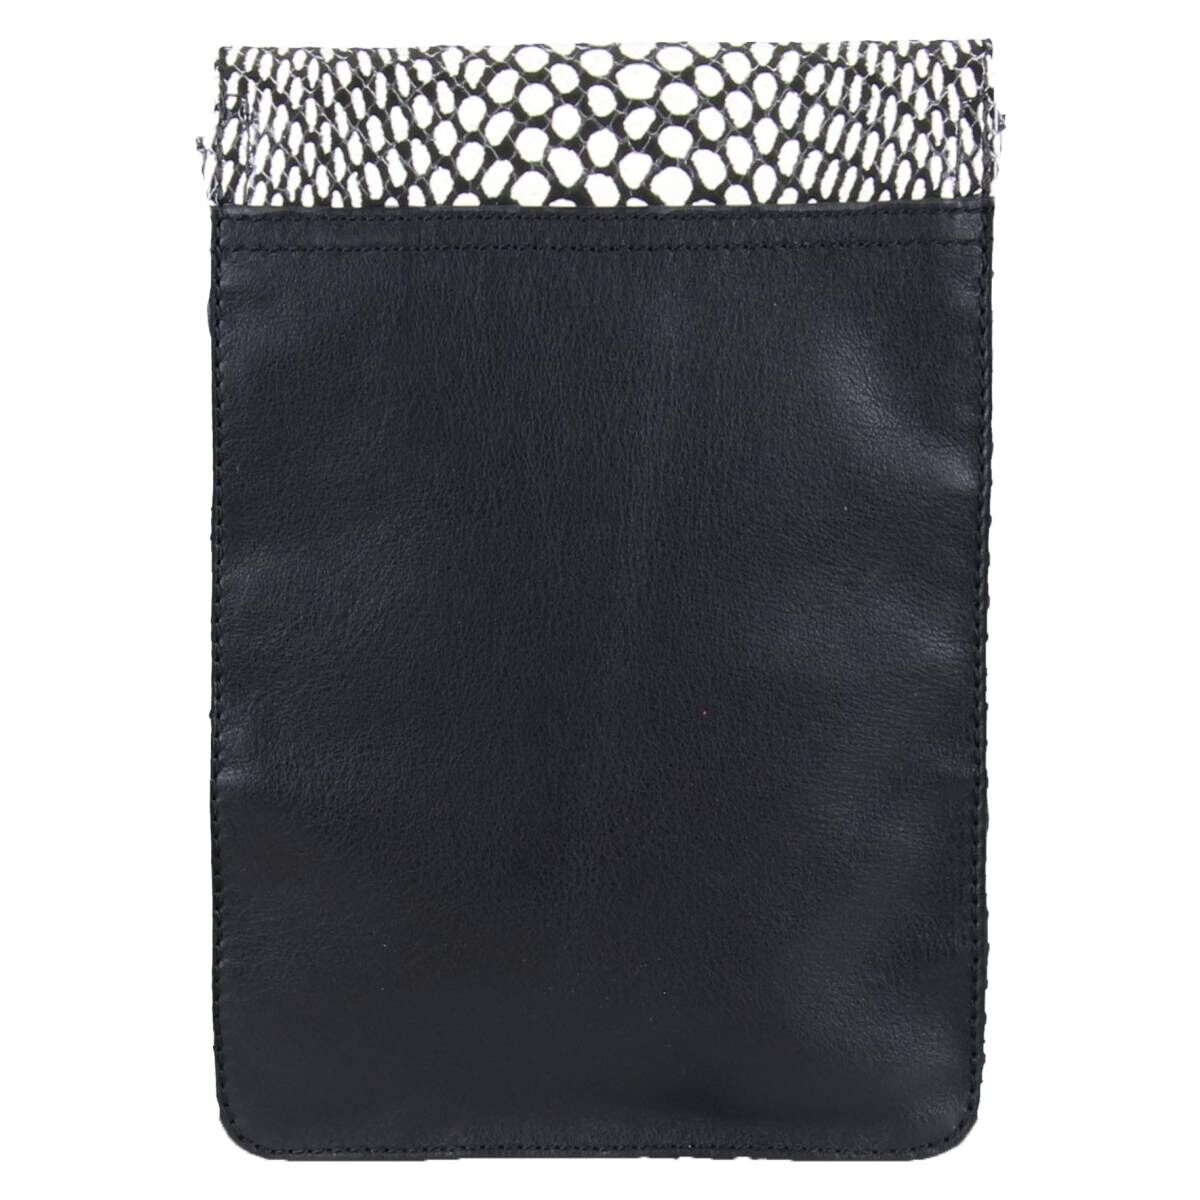 Arche bags ADILY Black by Penninkhoffashion.com